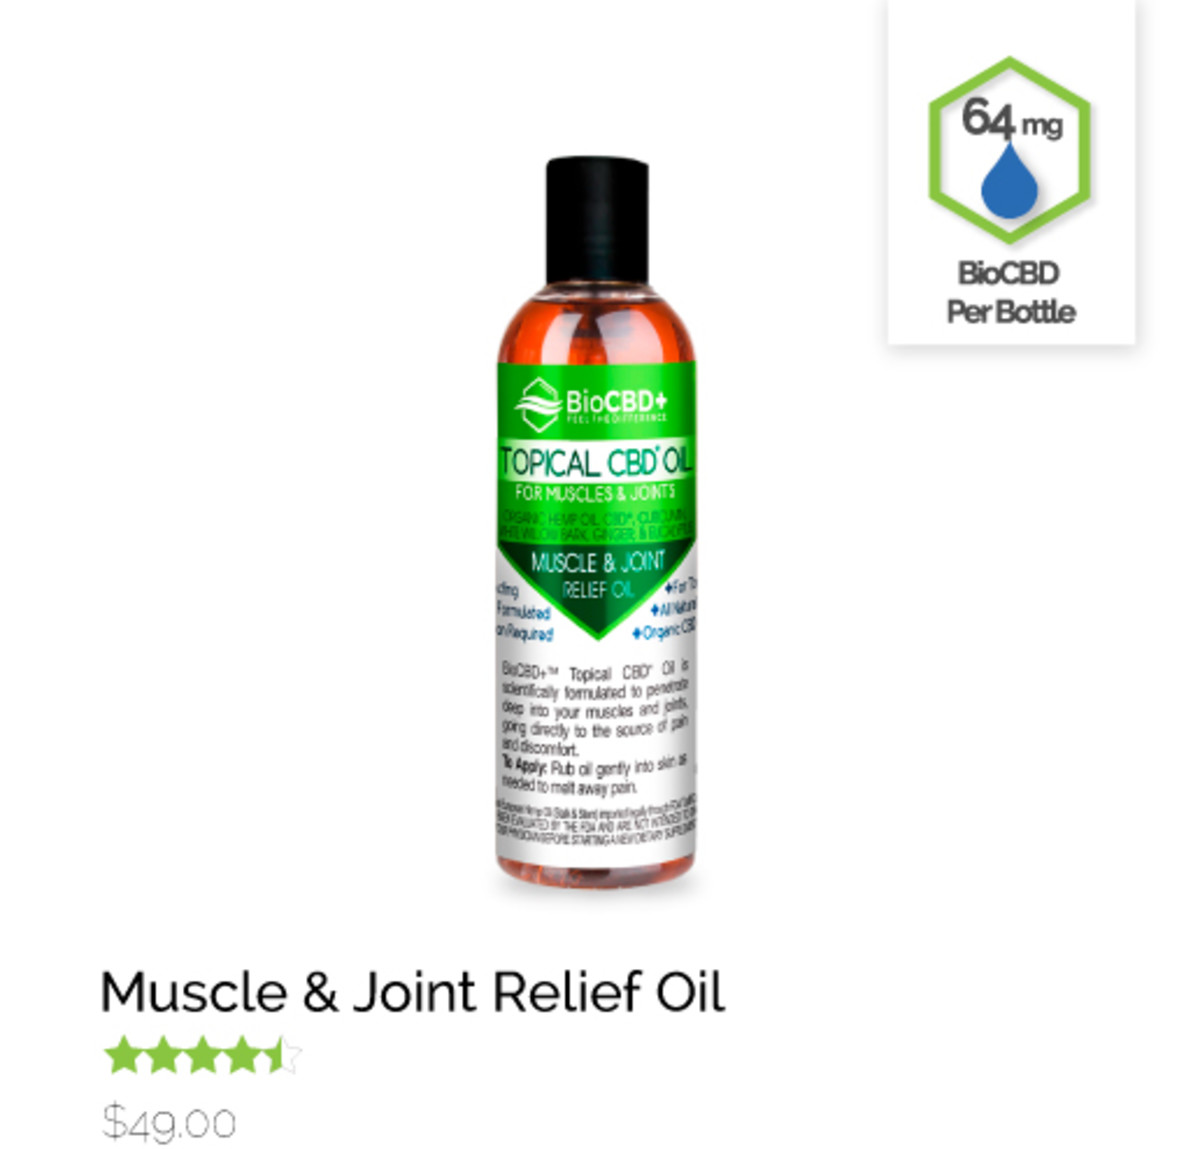 Muscle and Joint Relief Oil